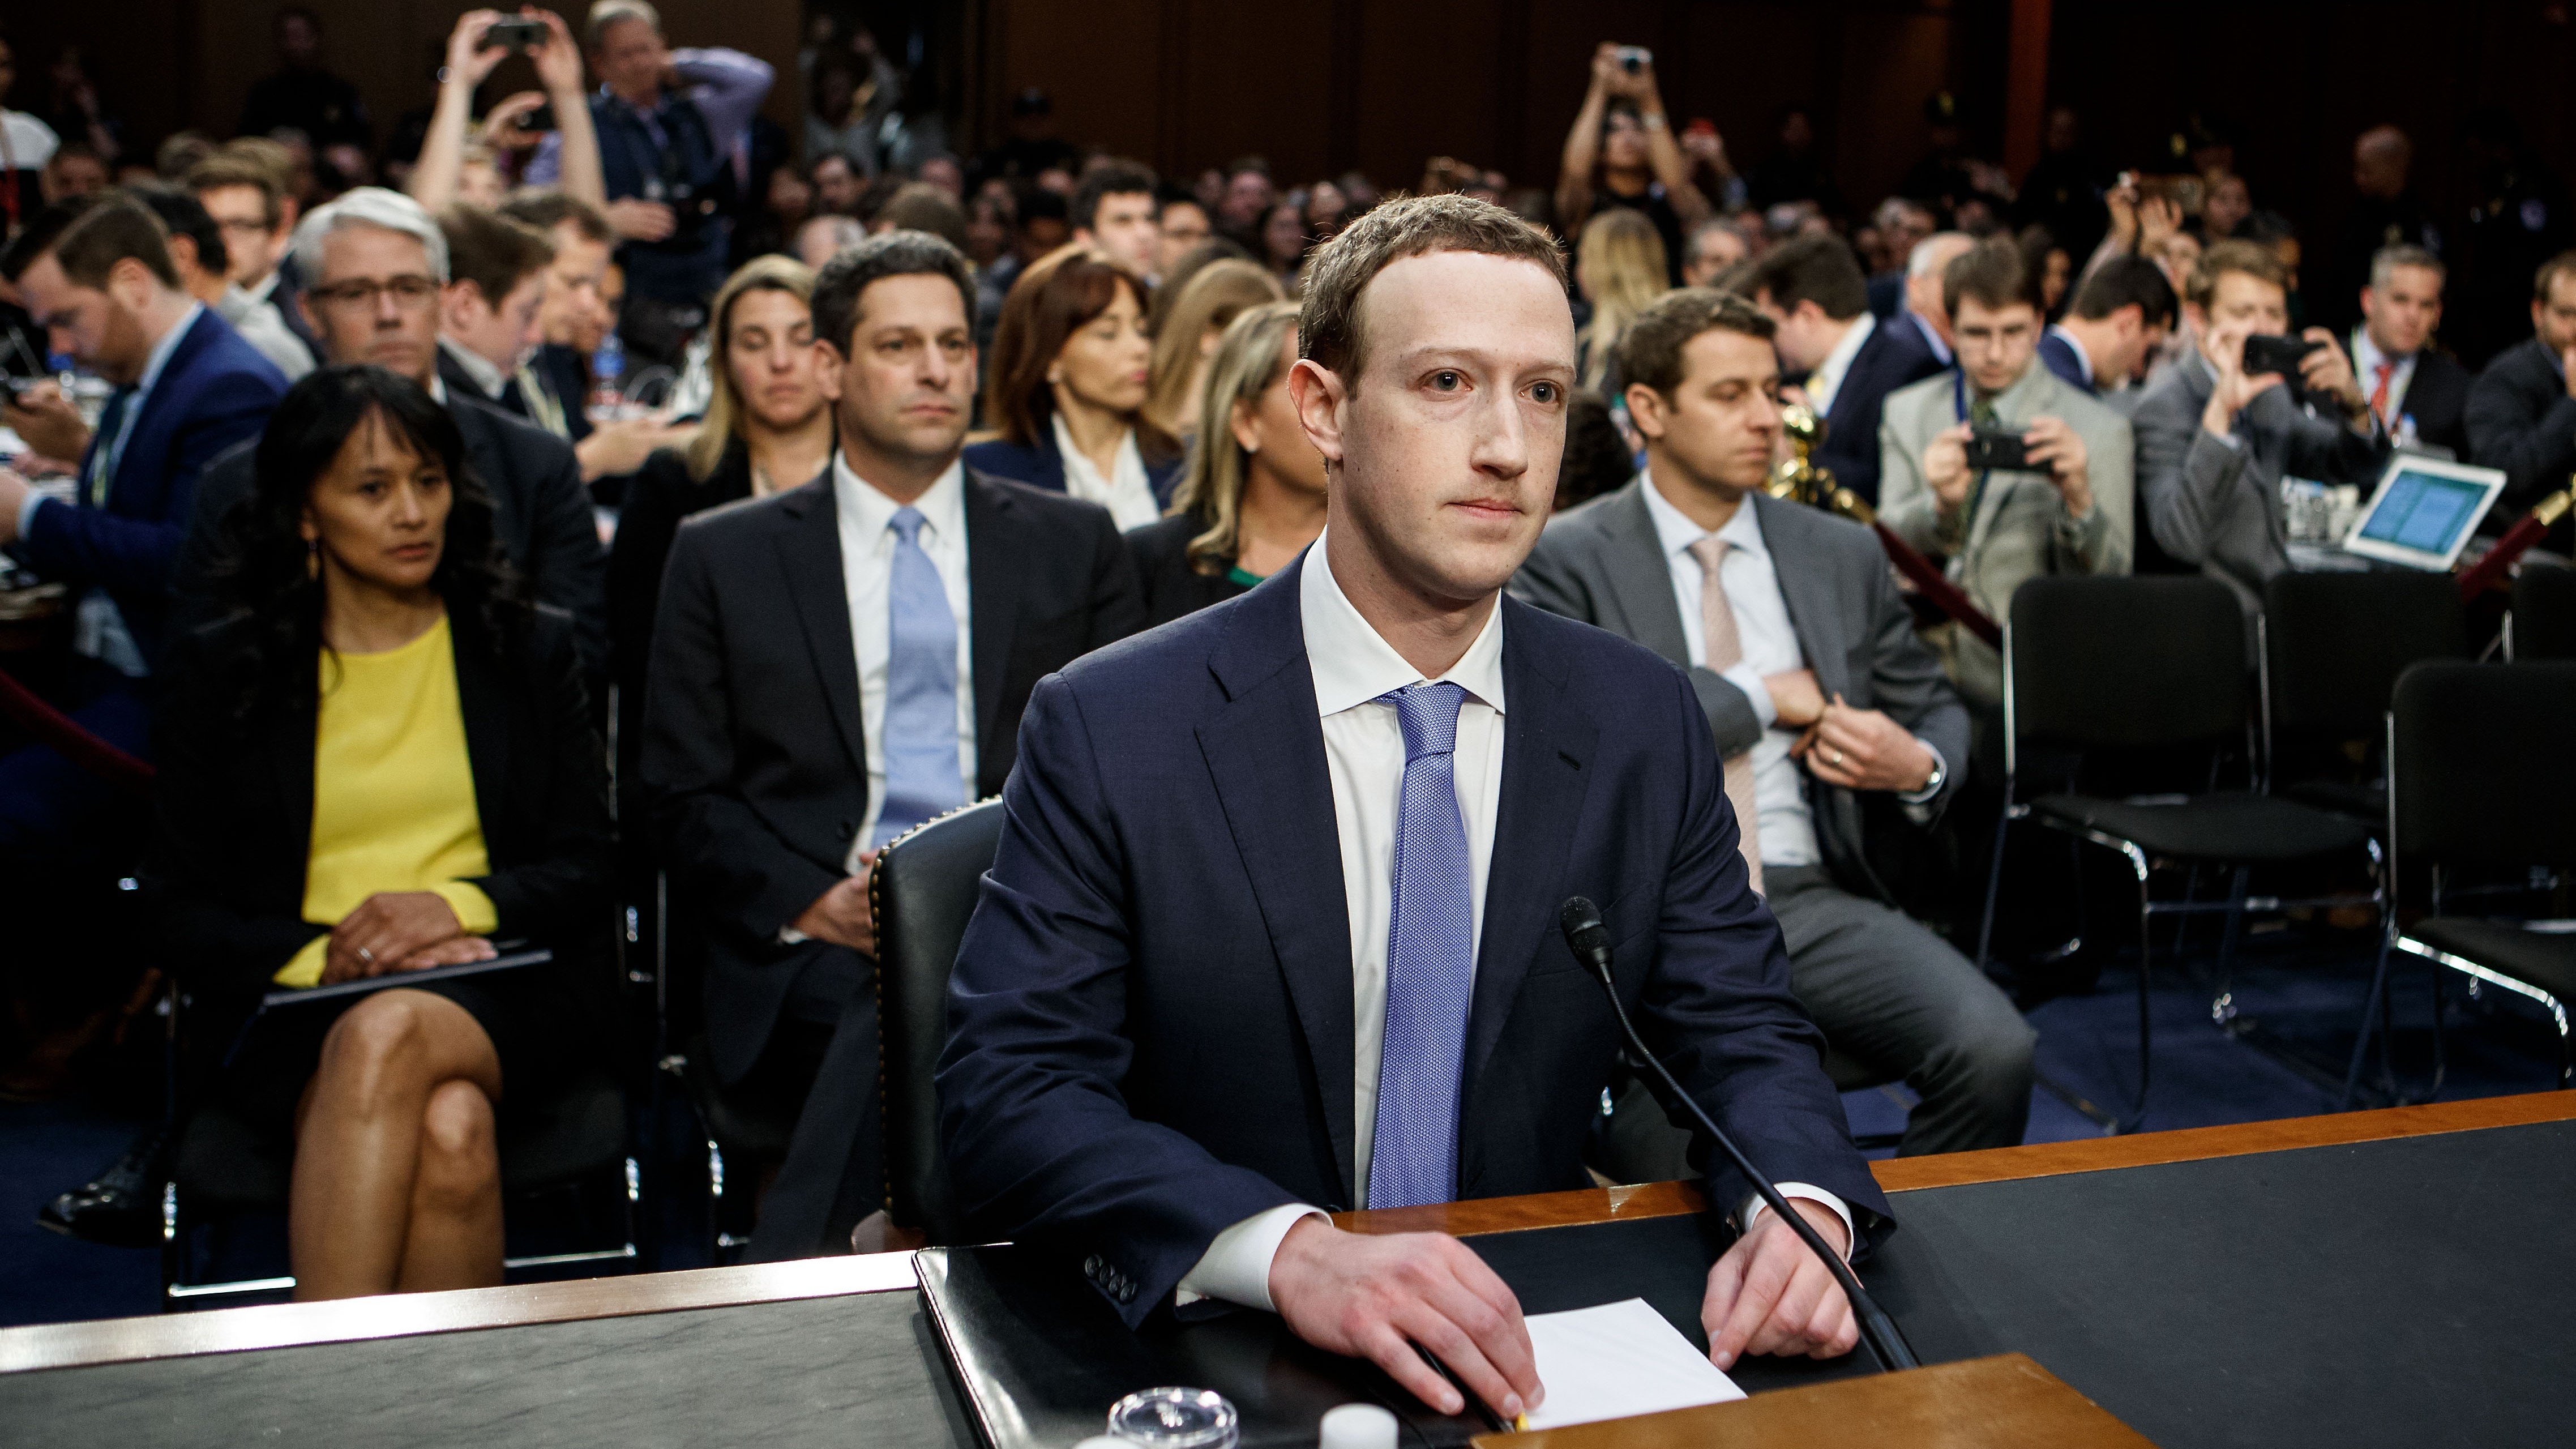 A lawsuit over Facebook emails could prove Zuckerberg knew about Cambridge Analytica earlier than he claimed